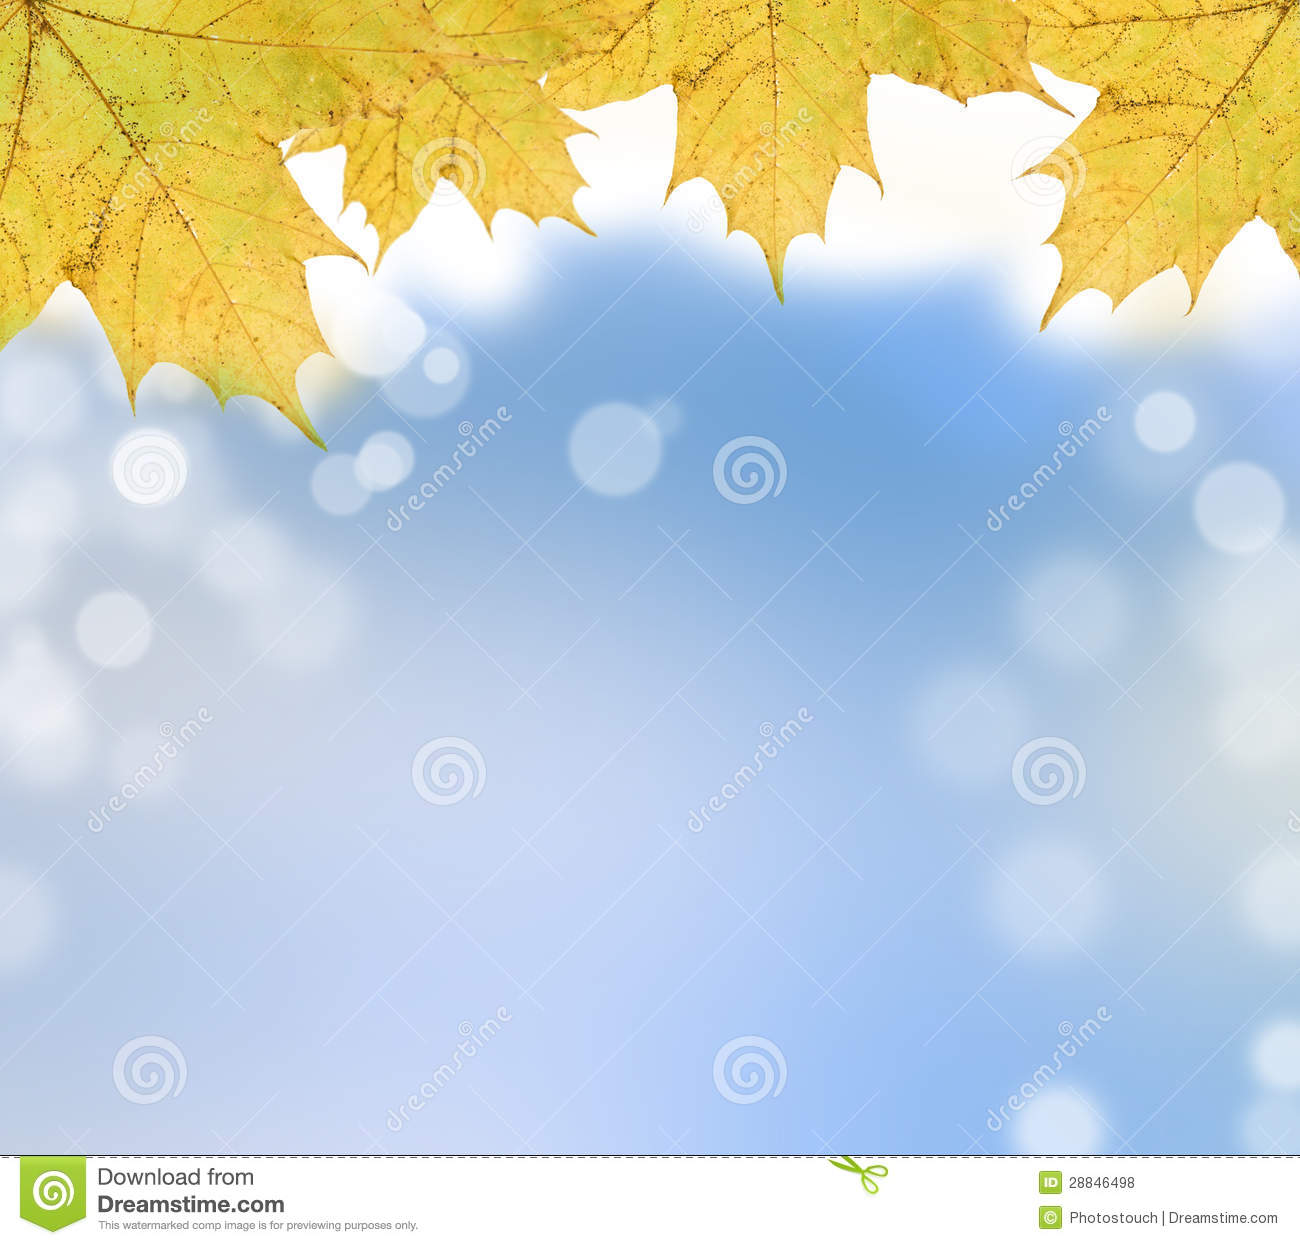 Free Fall Foliage Wallpaper Autumn Leaves On Soft Background Stock Illustration